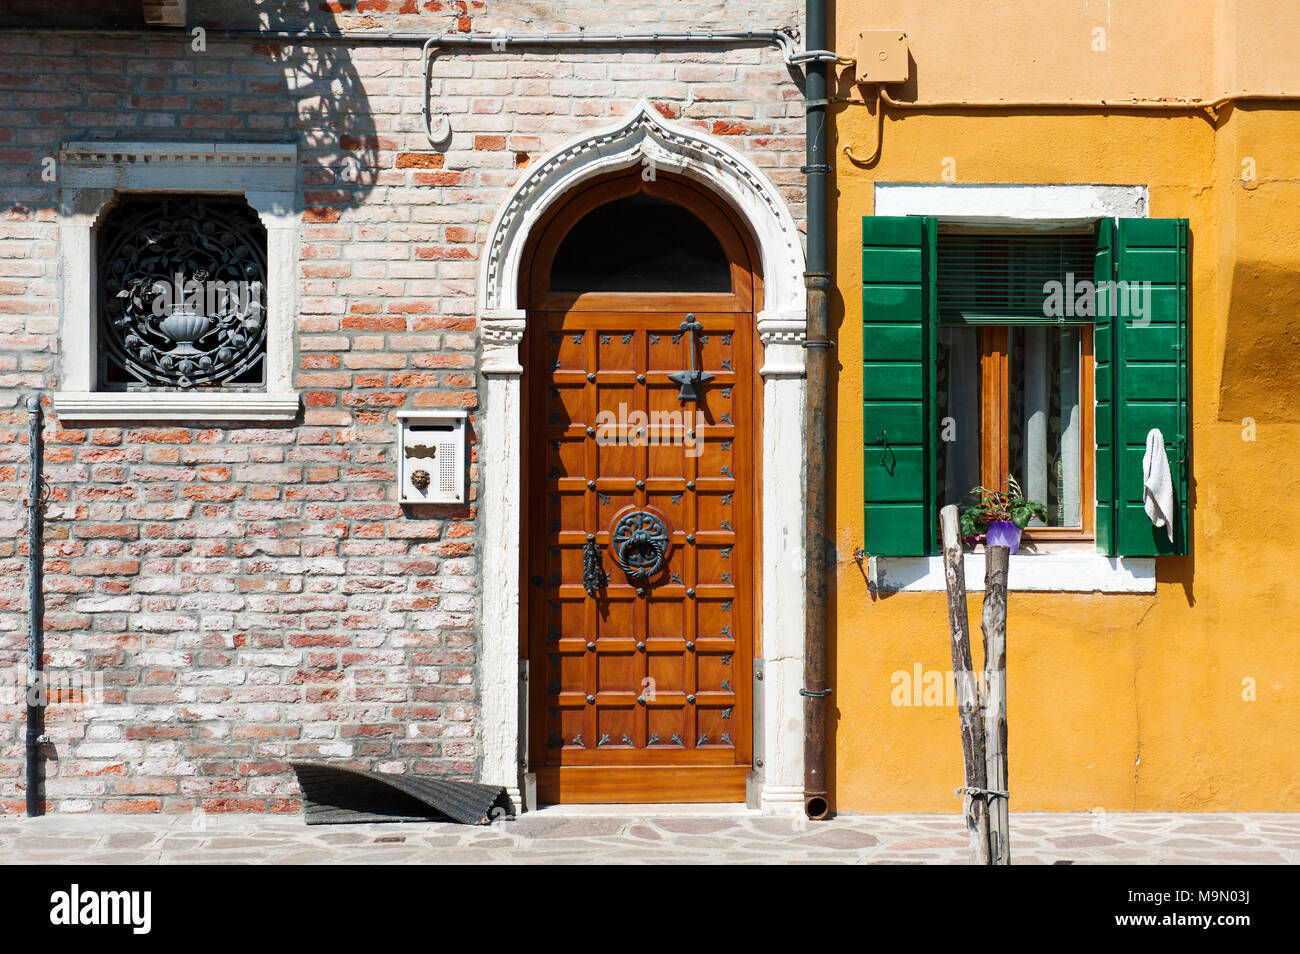 Burano island, Venice, Italy, Europe - a street with colorful houses - Stock Image